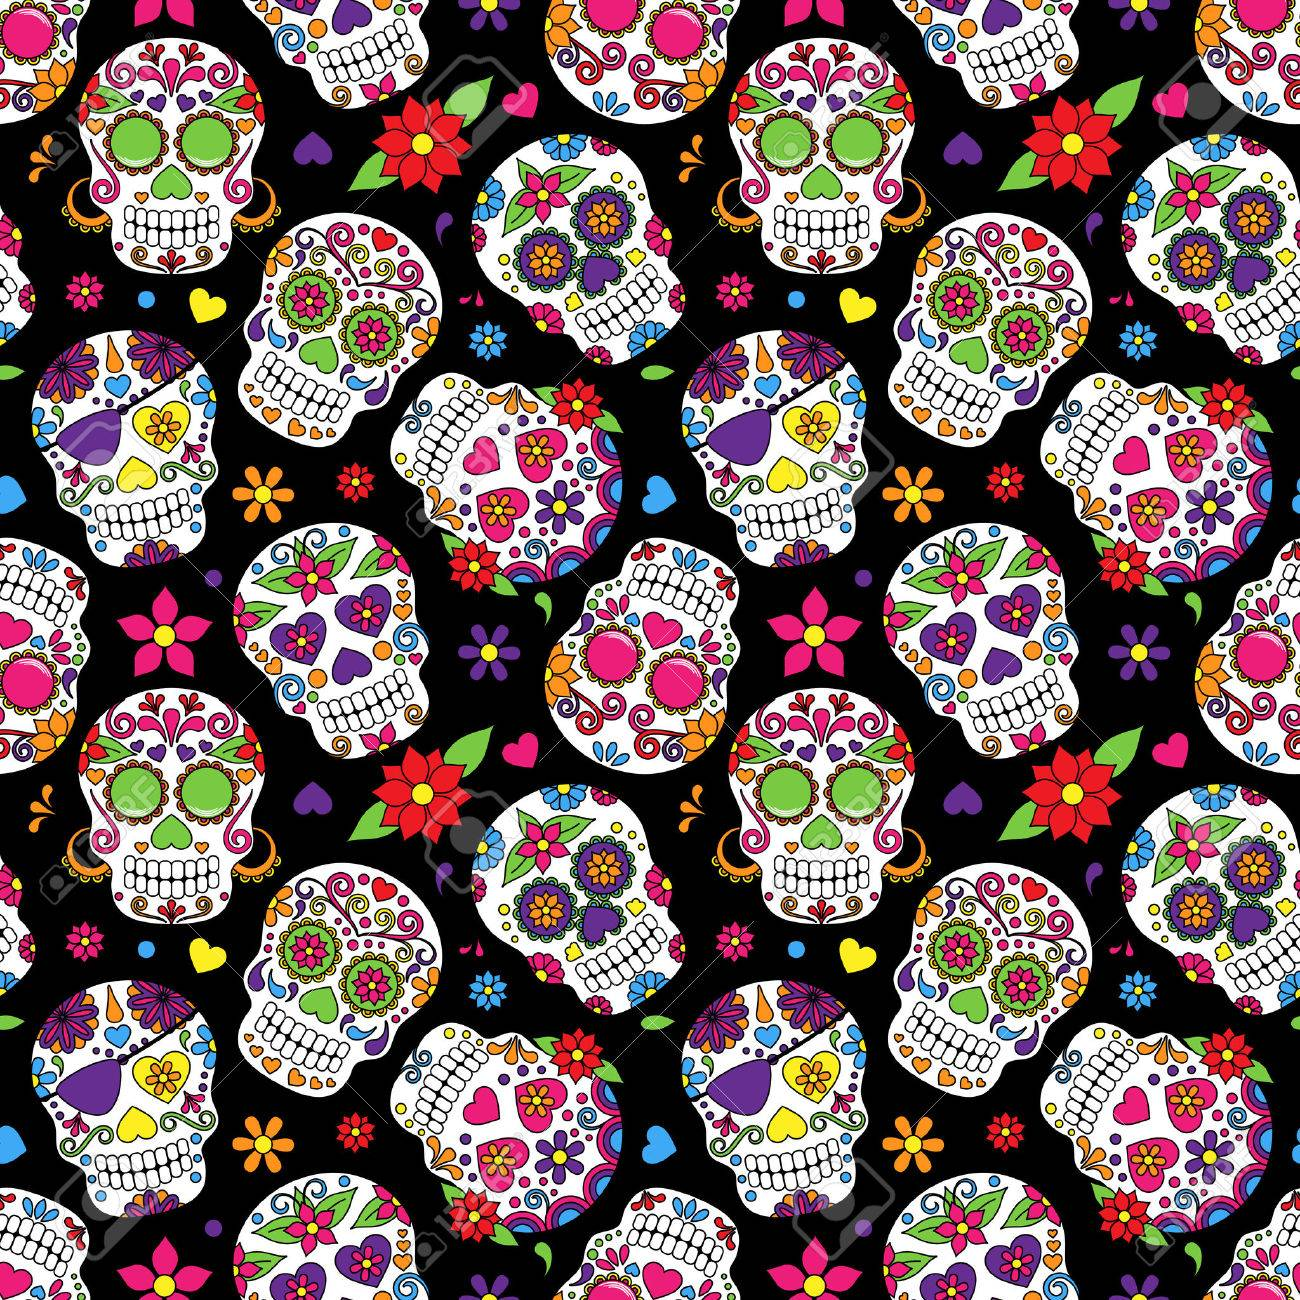 Day of the Dead Sugar Skull Seamless Vector Background - 36626870